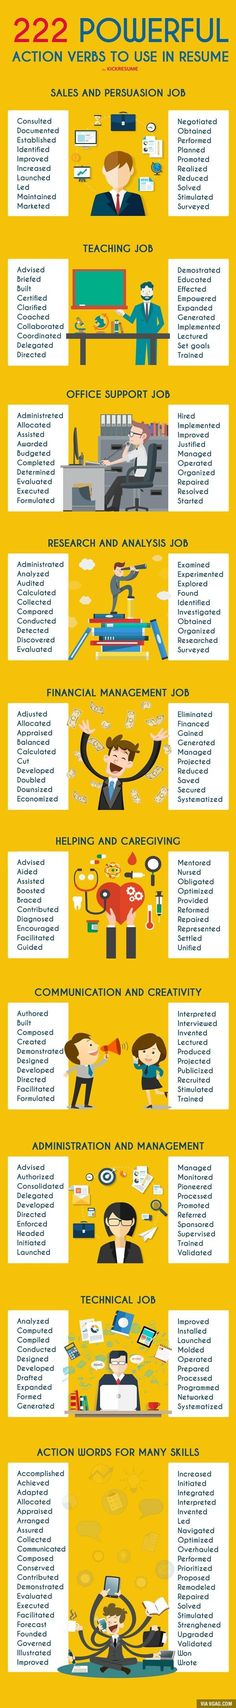 Career infographic : Resume Cheat Sheet: 222 Action Verbs To Use In Your New Resume  www.viralpx.com